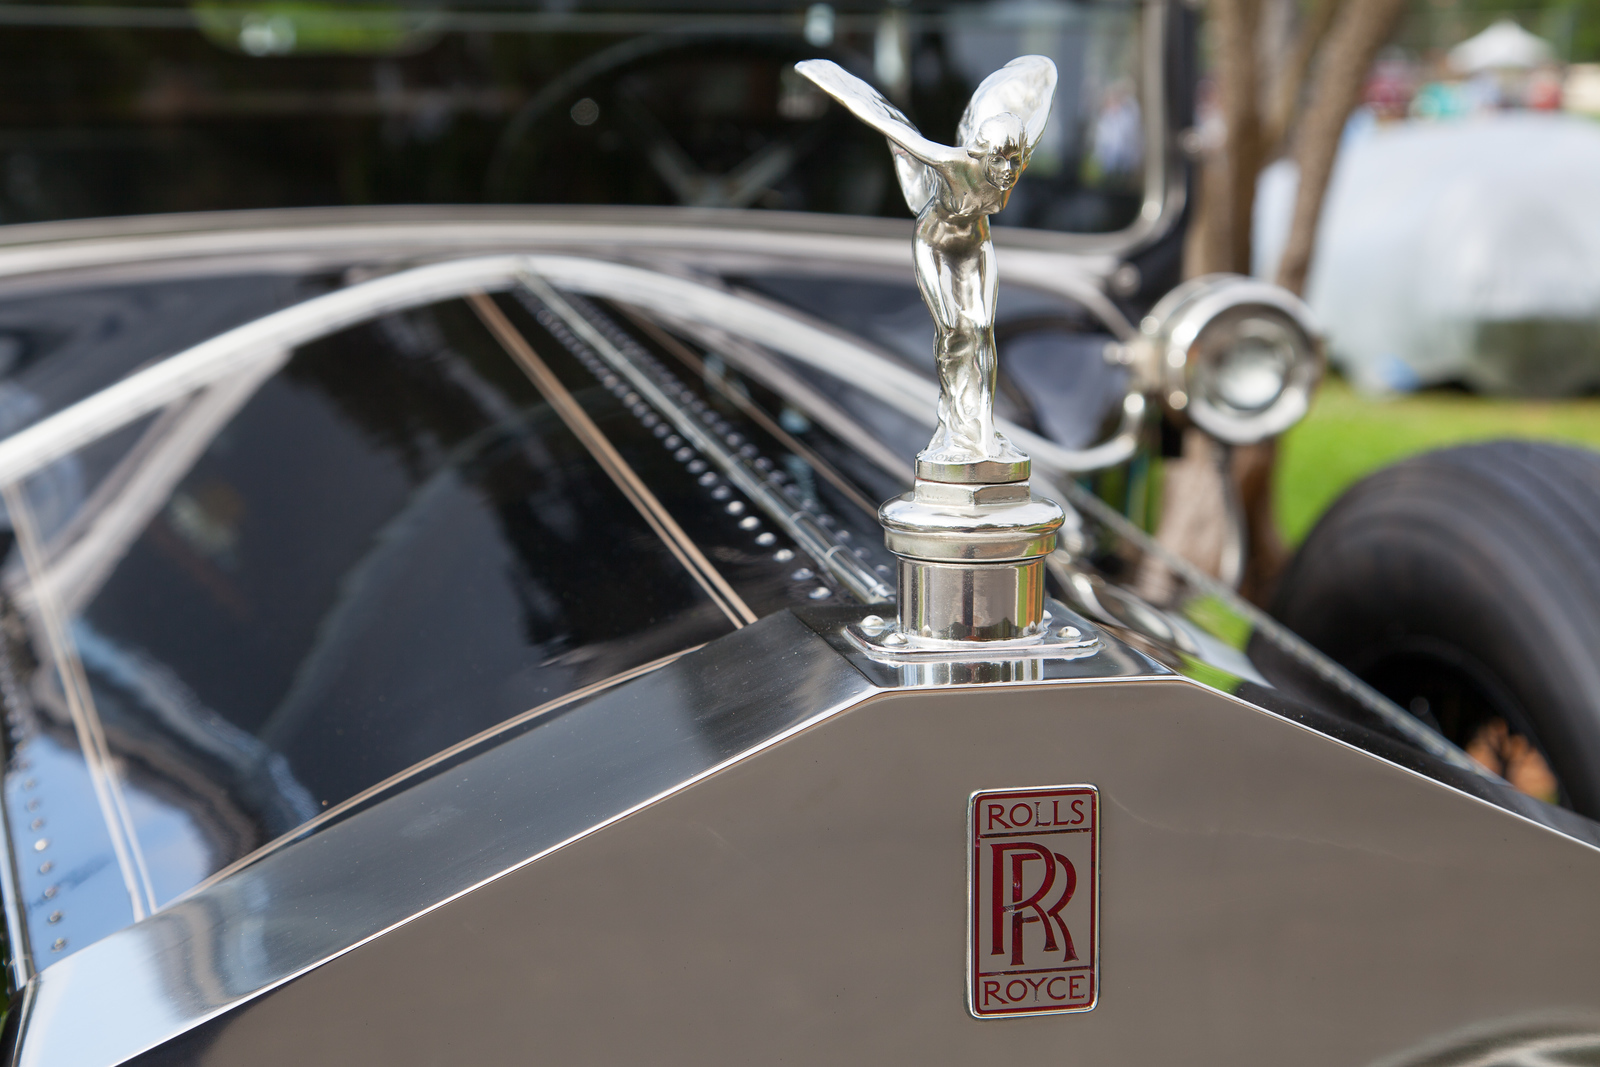 1925 Rolls-Royce Silver Ghost Merrimac Town Car, owned by Michael & Patricia Adams